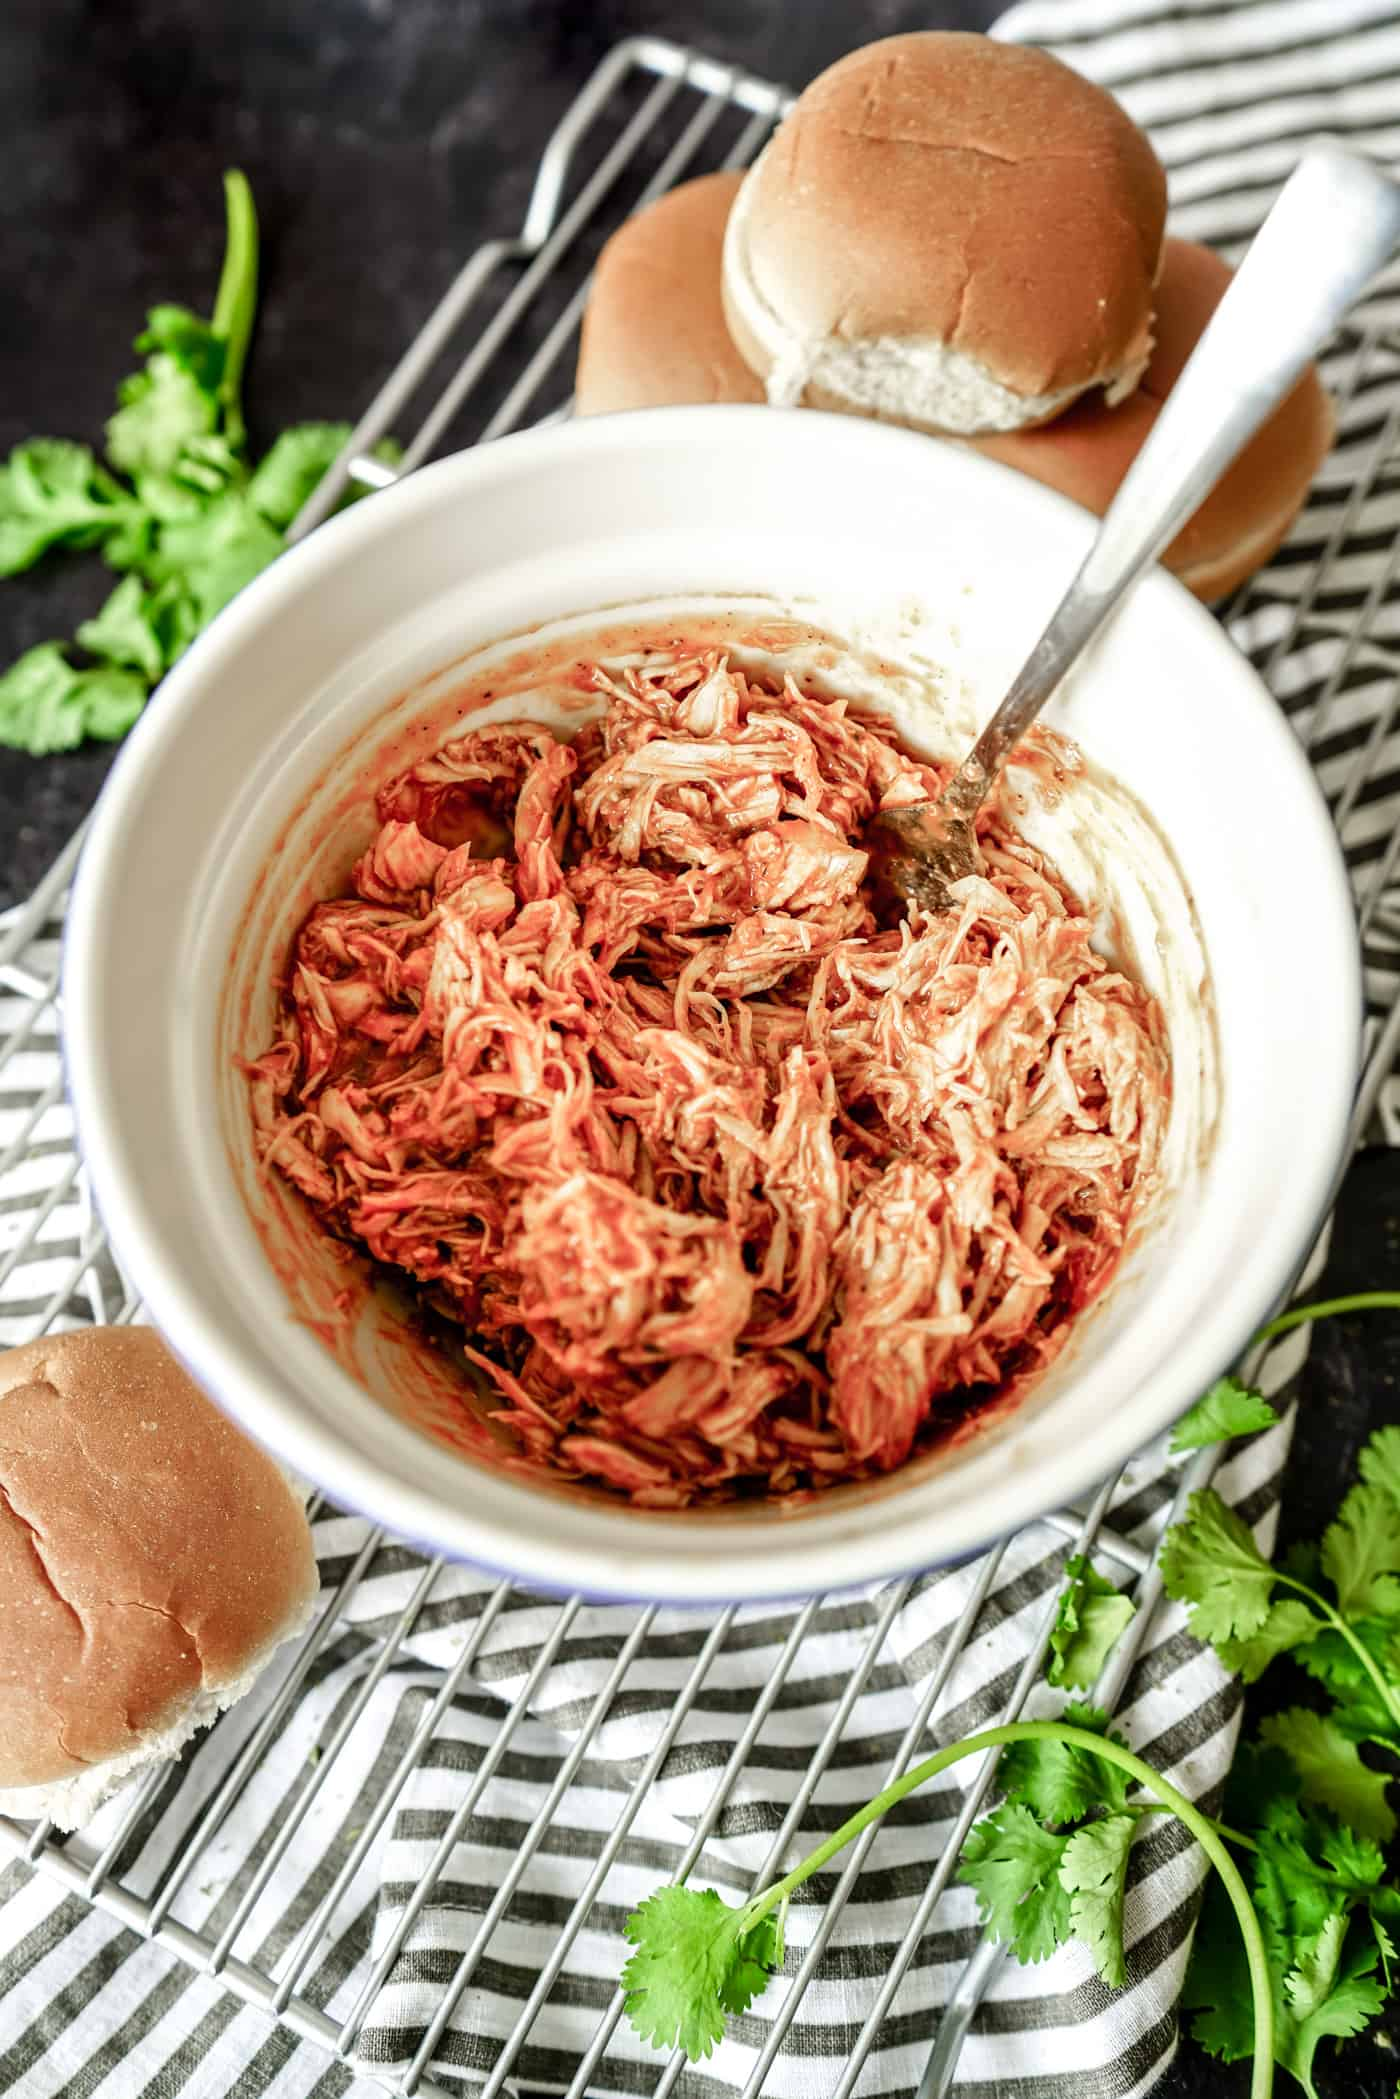 A large bowl of shredded barbeque chicken